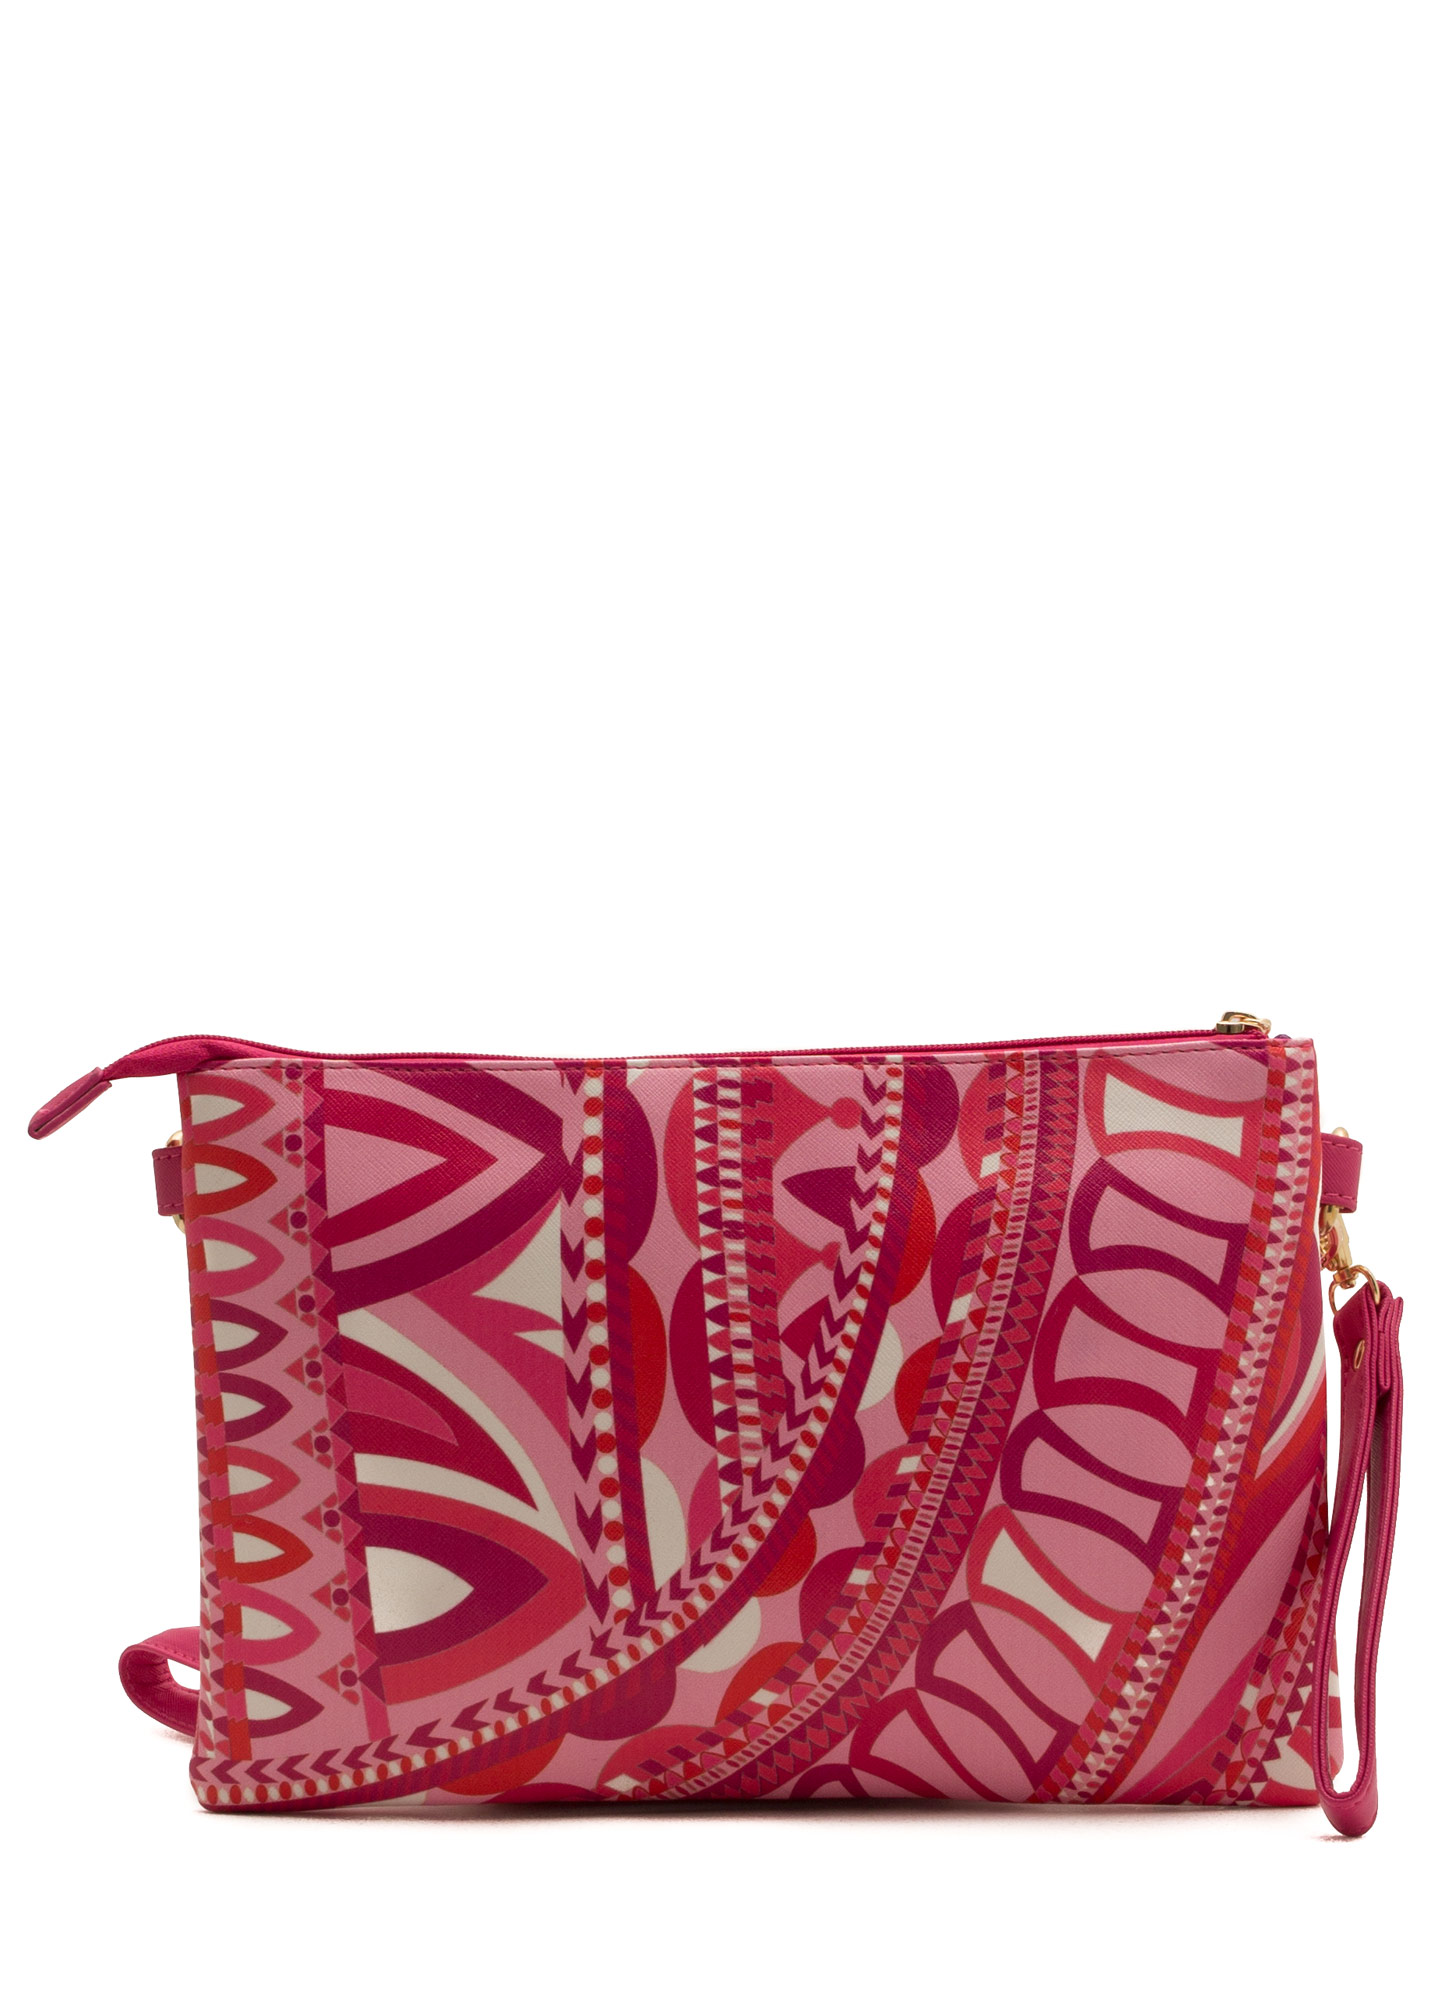 Contrasting Patterned Clutch PINKWHITE